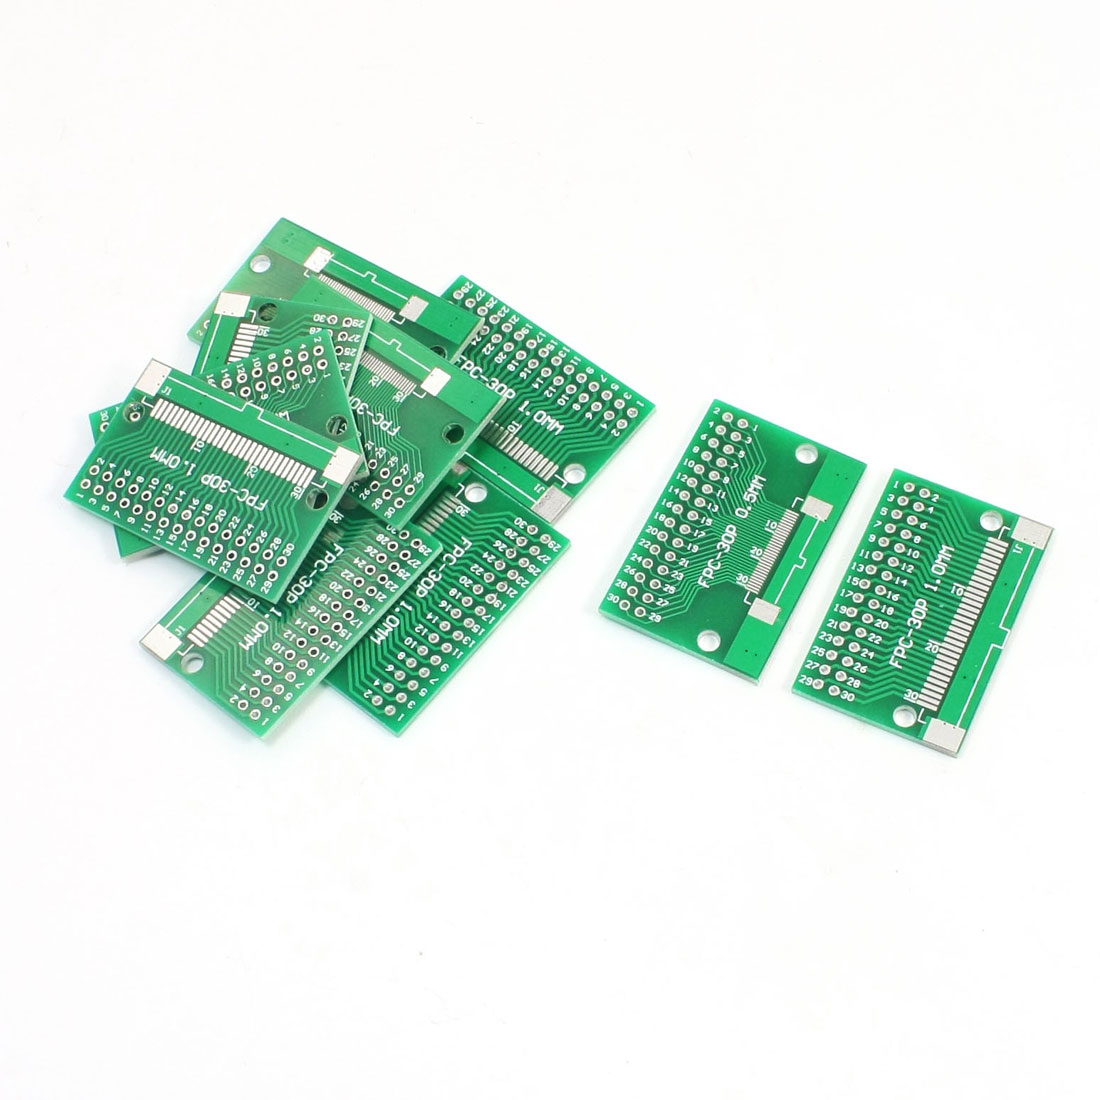 10Pcs FPC/FFC-30P to DIP30 0.5mm/1.0mm 2 Sides SMD PCB Adapter Plates